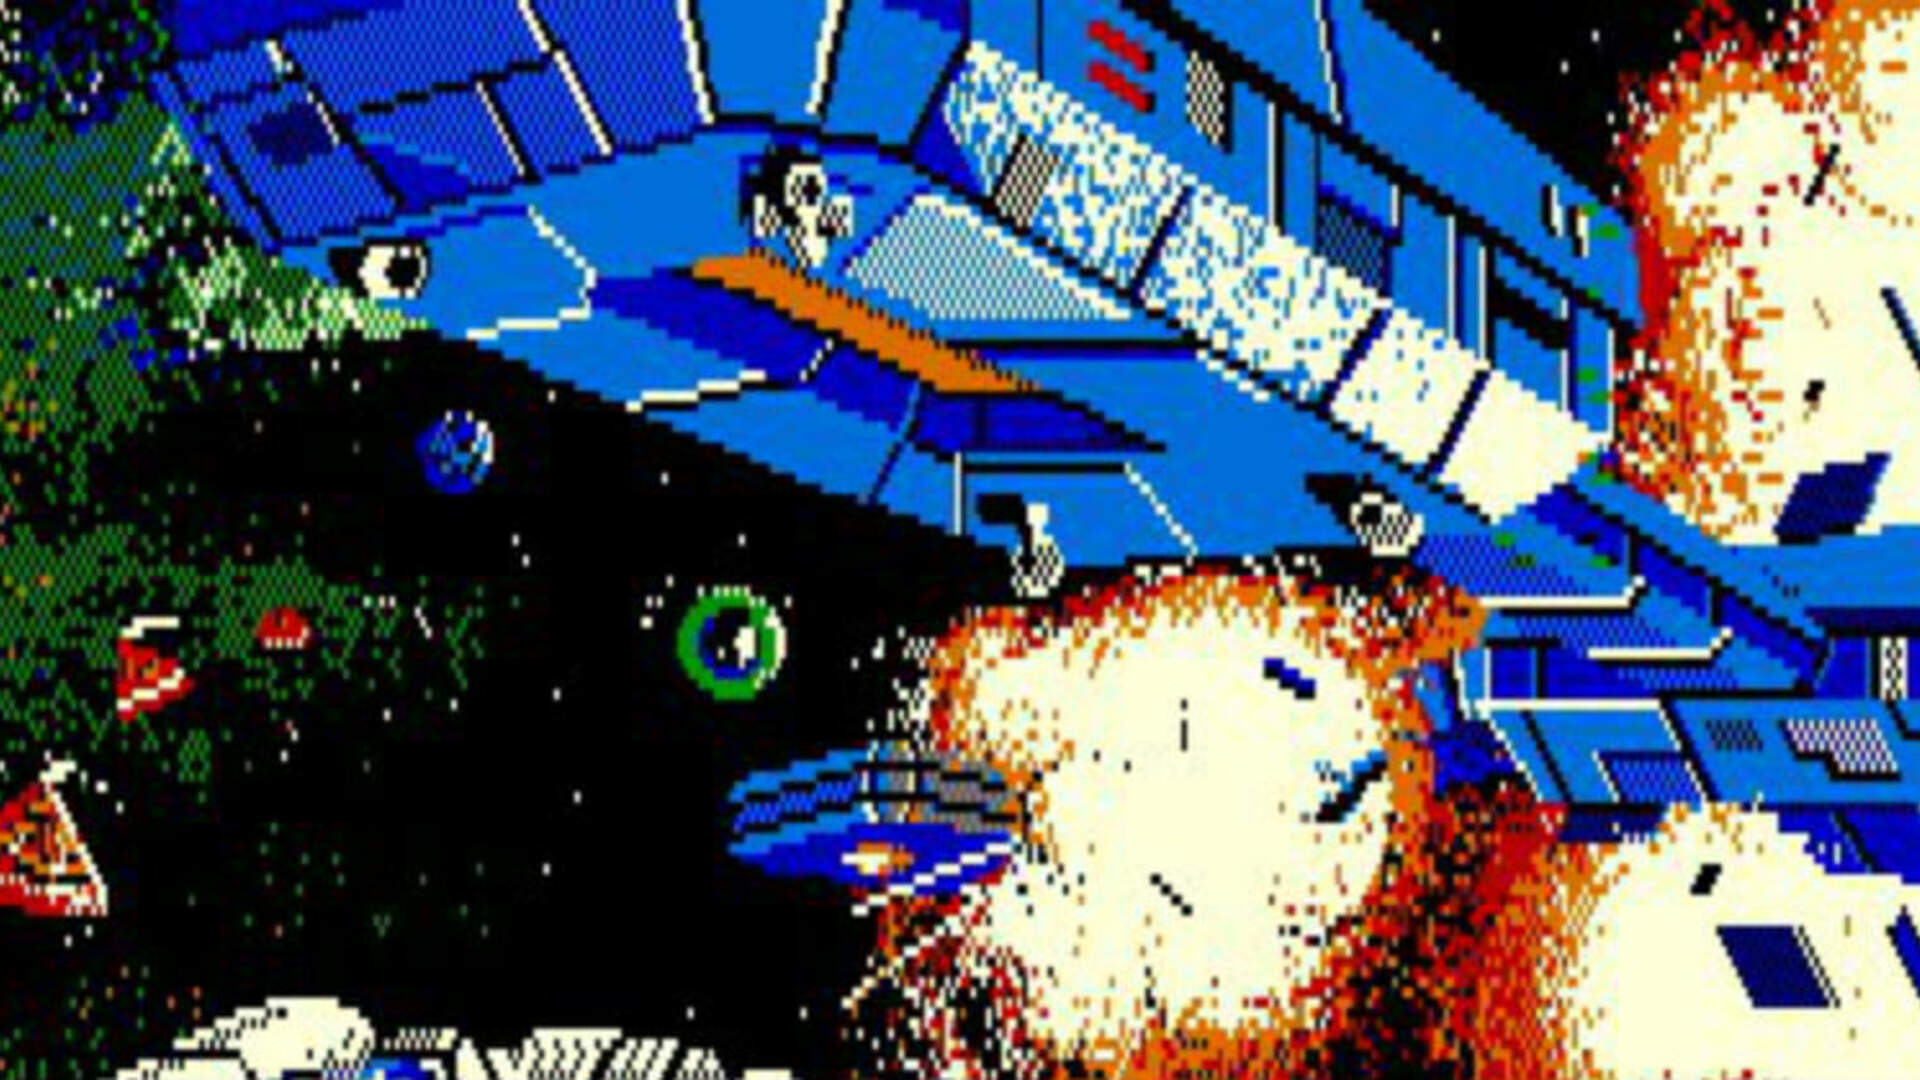 Kotori Yoshimura and Star Cruiser: How Twitter Revived a Piece of Japanese Gaming History